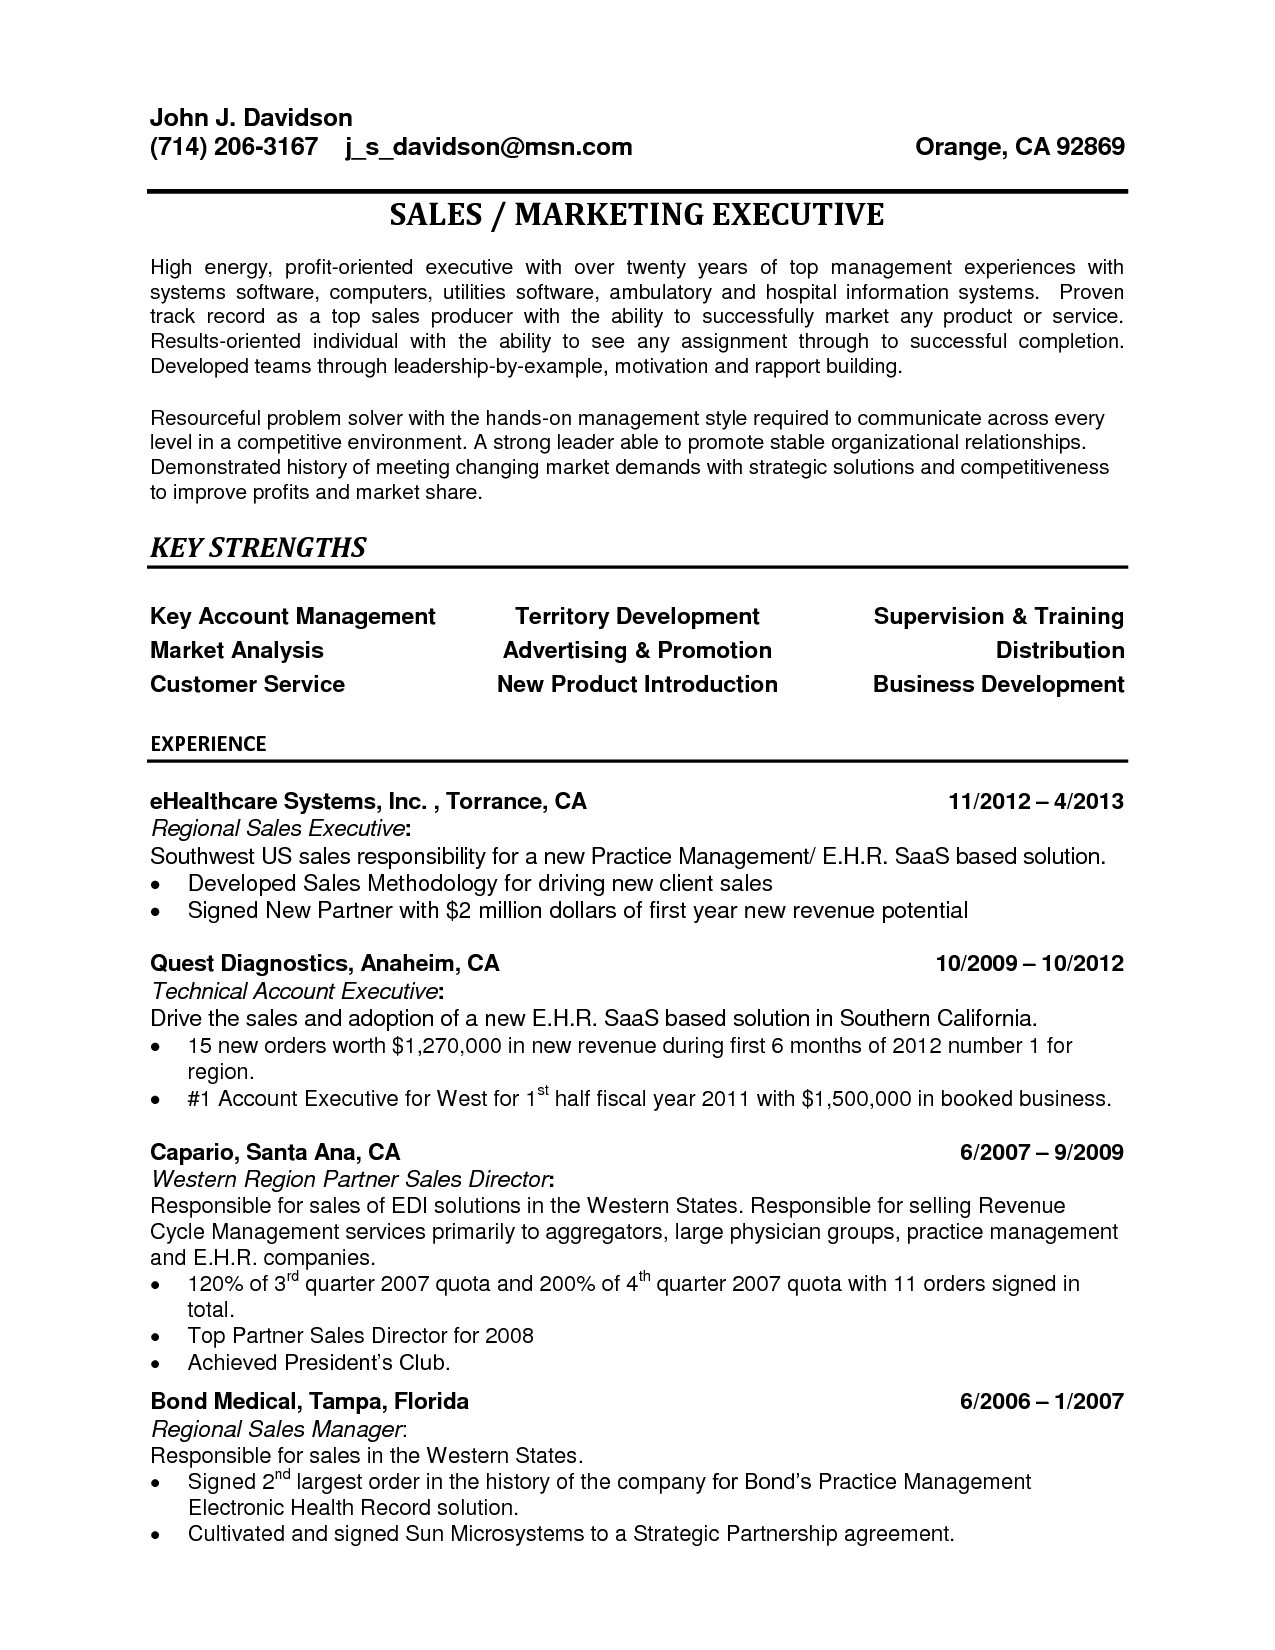 Property Manager Resume Objectives - Property Manager Resume Objective